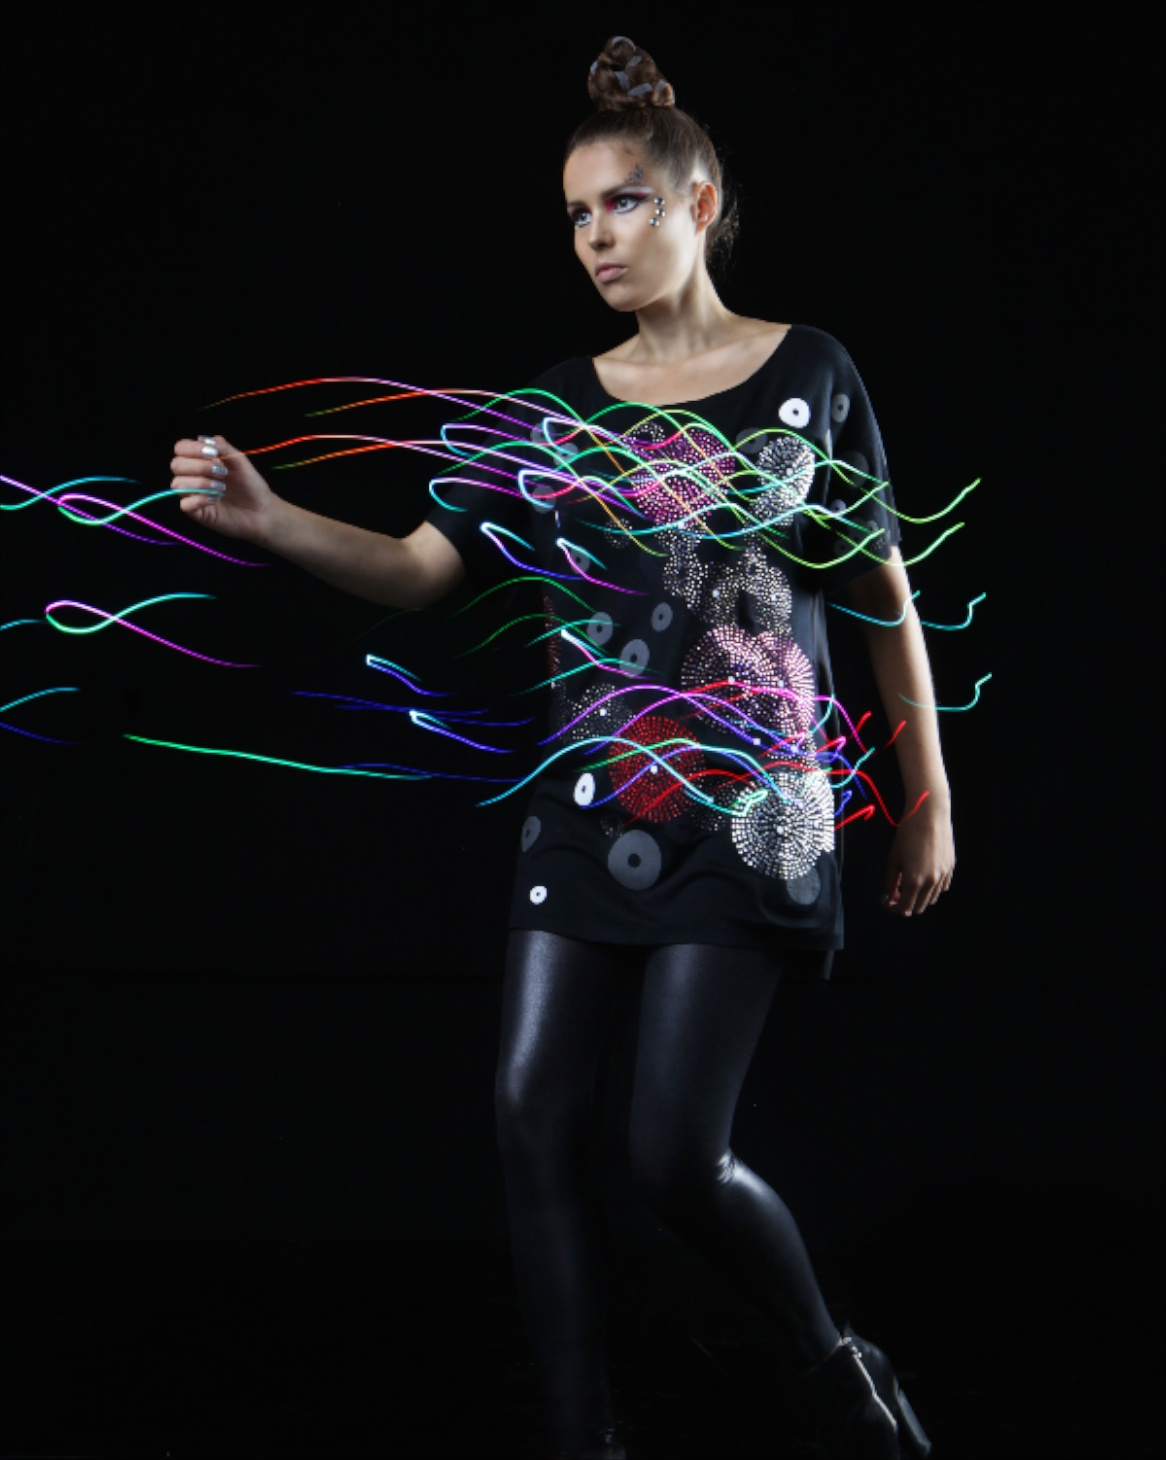 CuteCircuit's Twirkle shirt